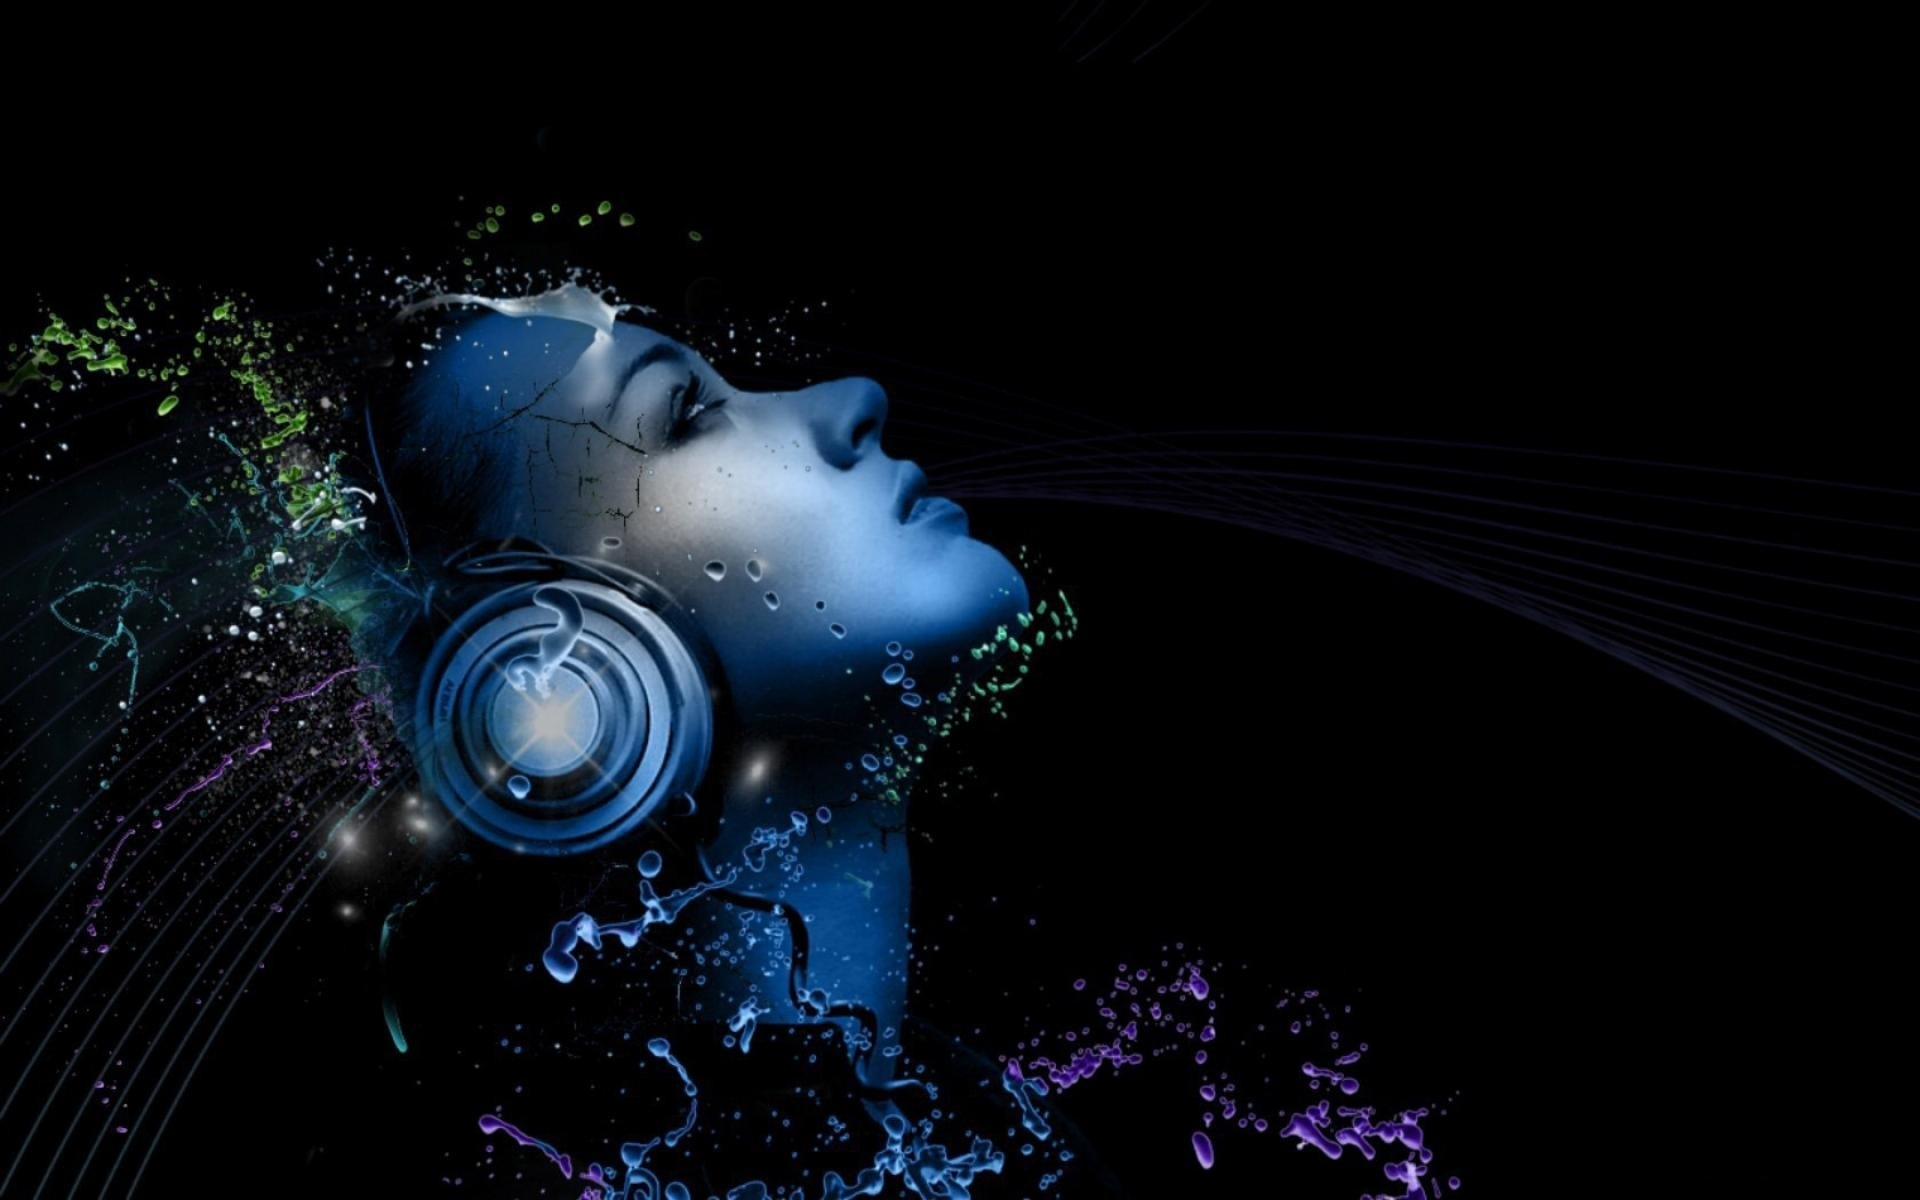 dj wallpapers hd android apps on google play 1920x1200